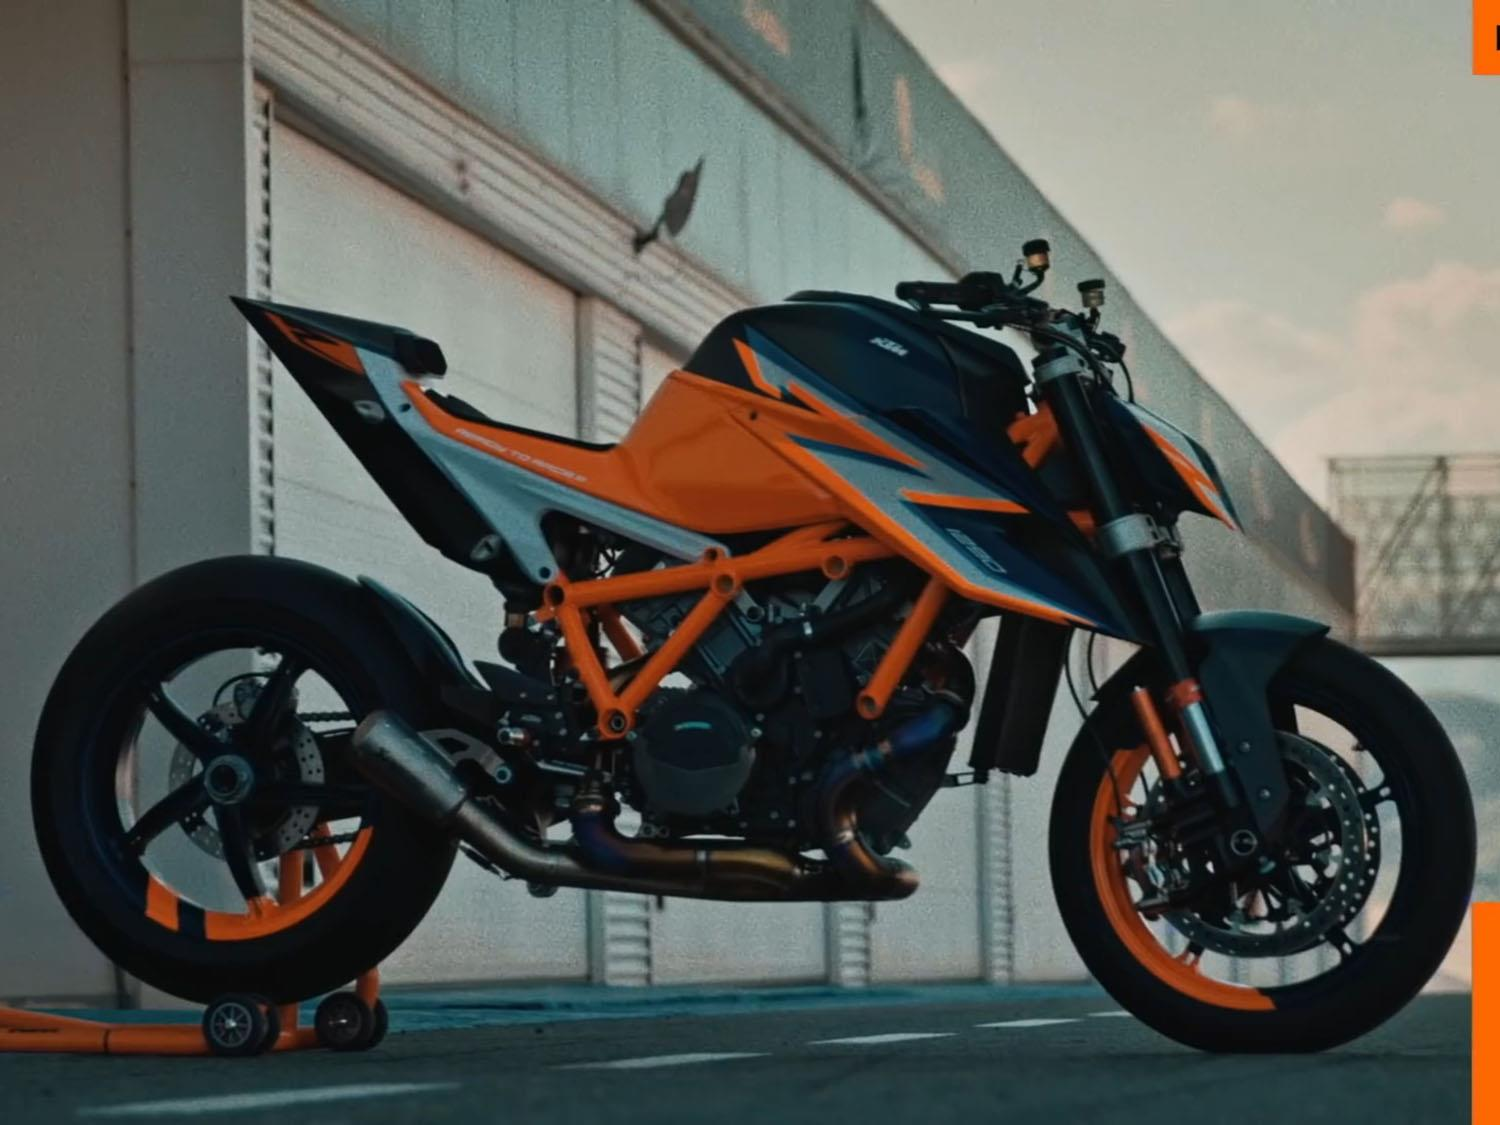 A side view of the KTM 1290 Super Duke R